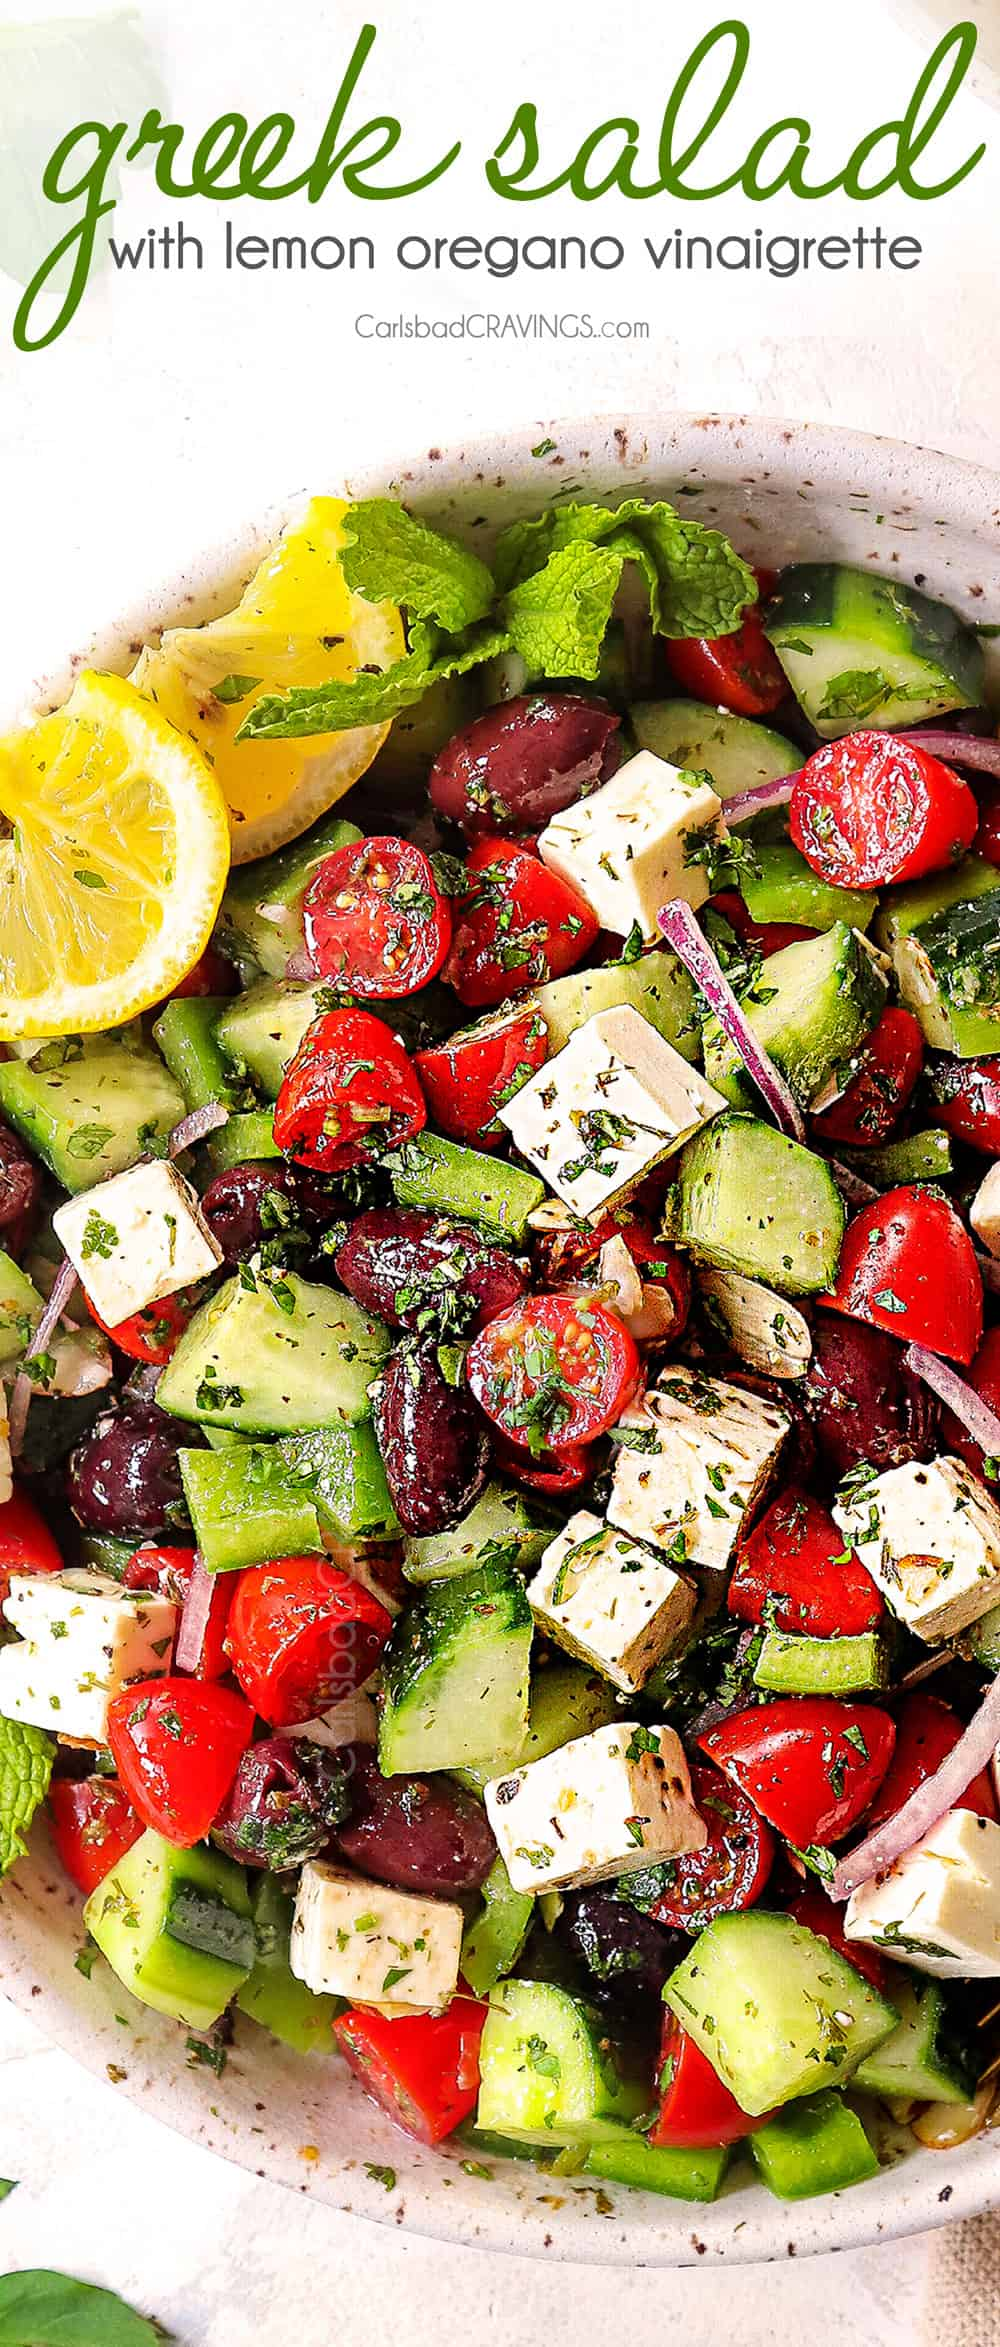 showing how to make Greek Salad recipe by mixing tomatoes, cucumbers, Kalamata olives, red onions and feta together